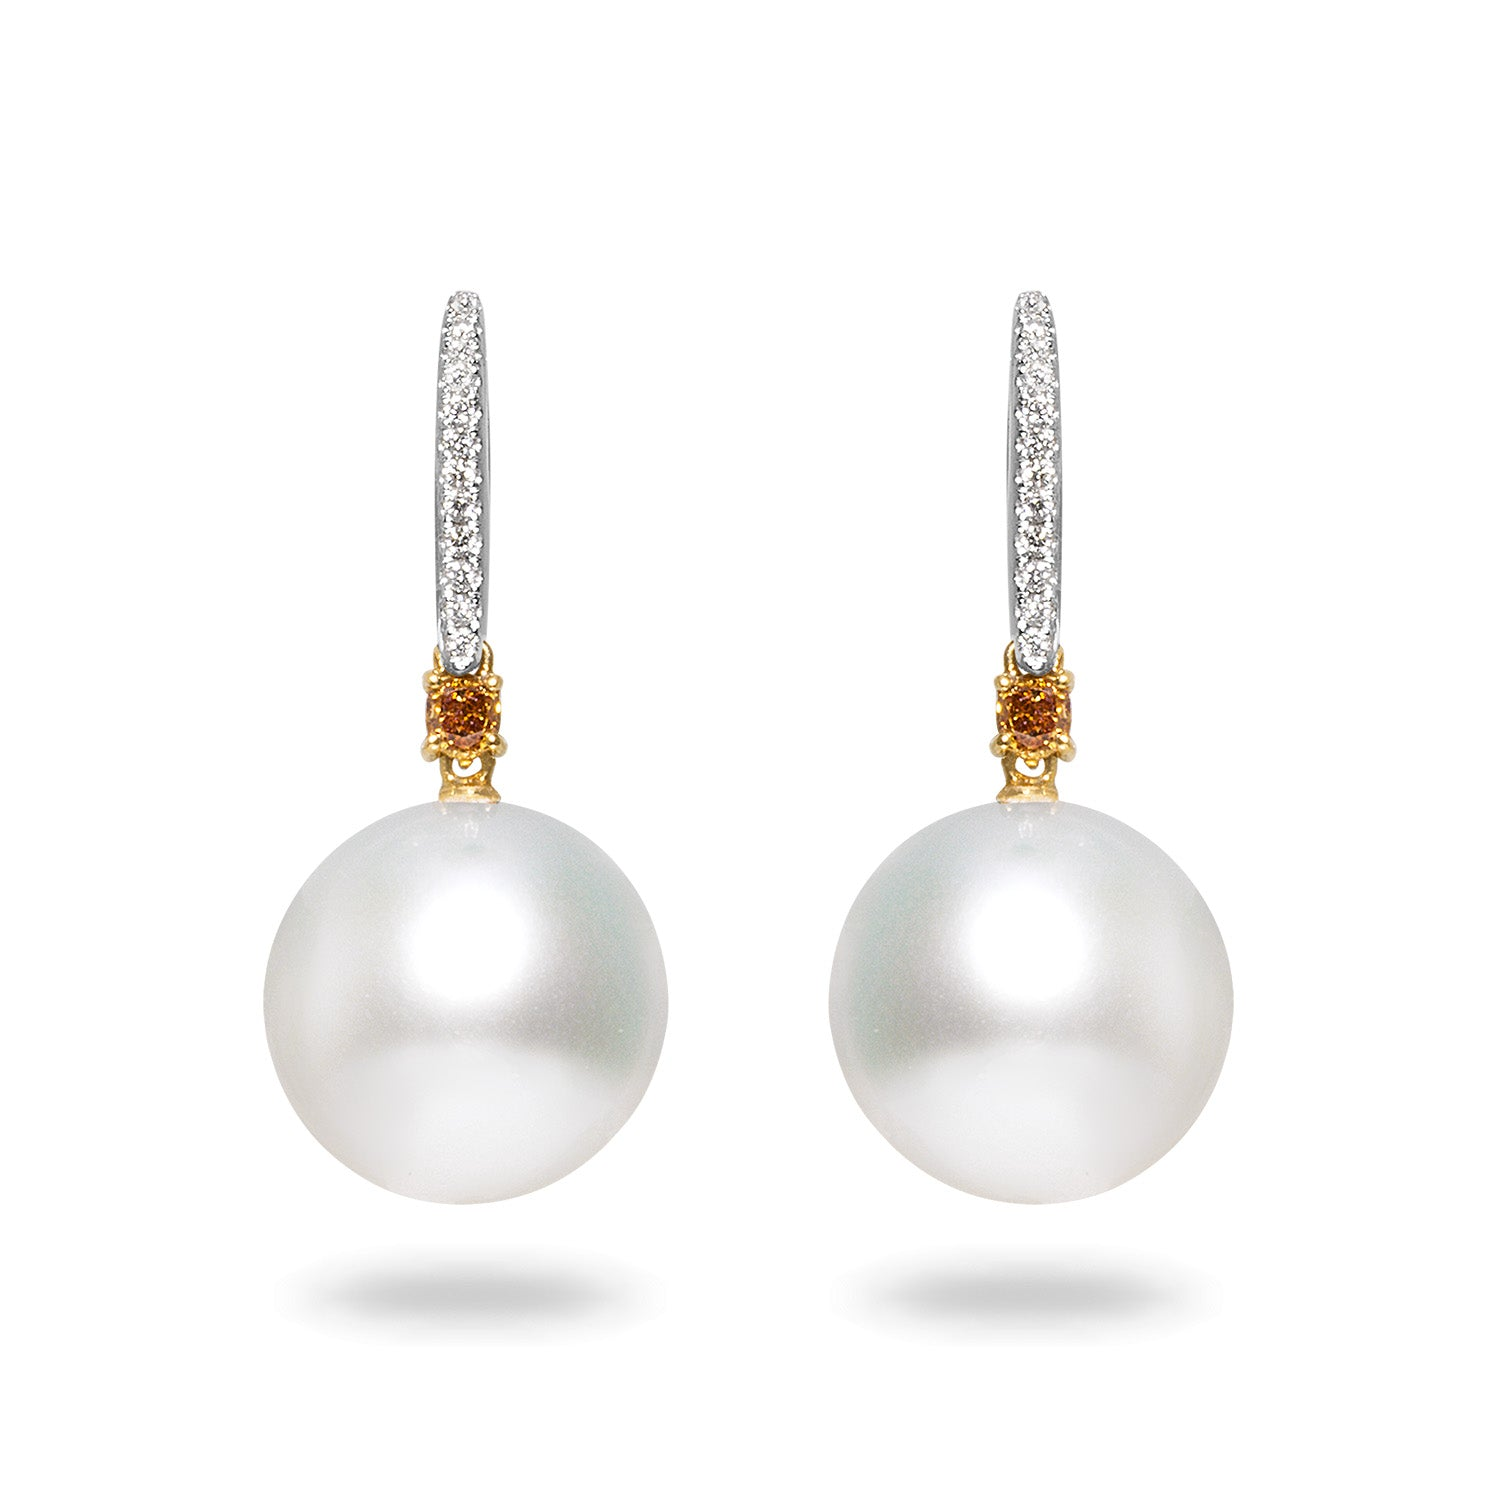 14-15mm White South Sea Pearl and Diamond Earrings